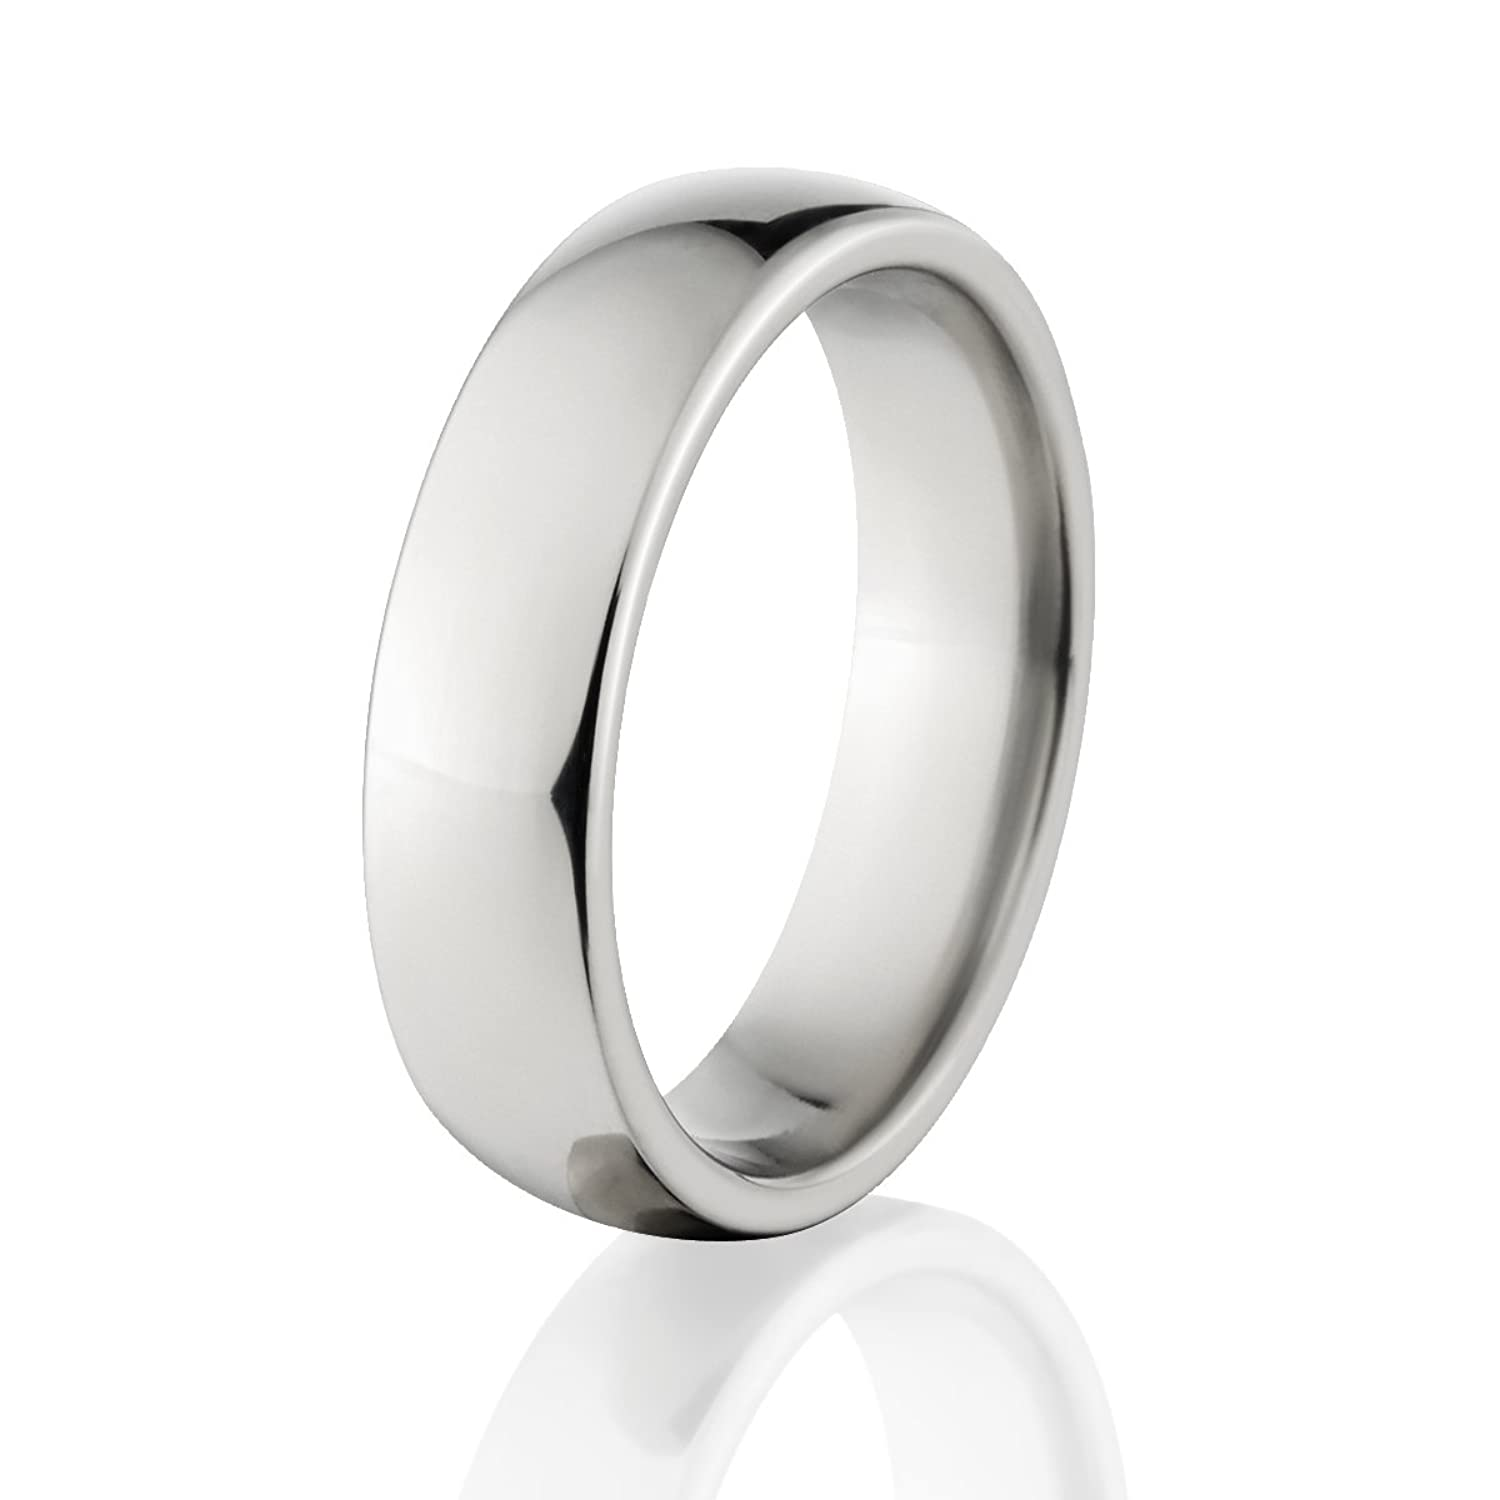 Titanium Mens Rings Made In The USA   Titanium Wedding Bands For Men |Amazon.com